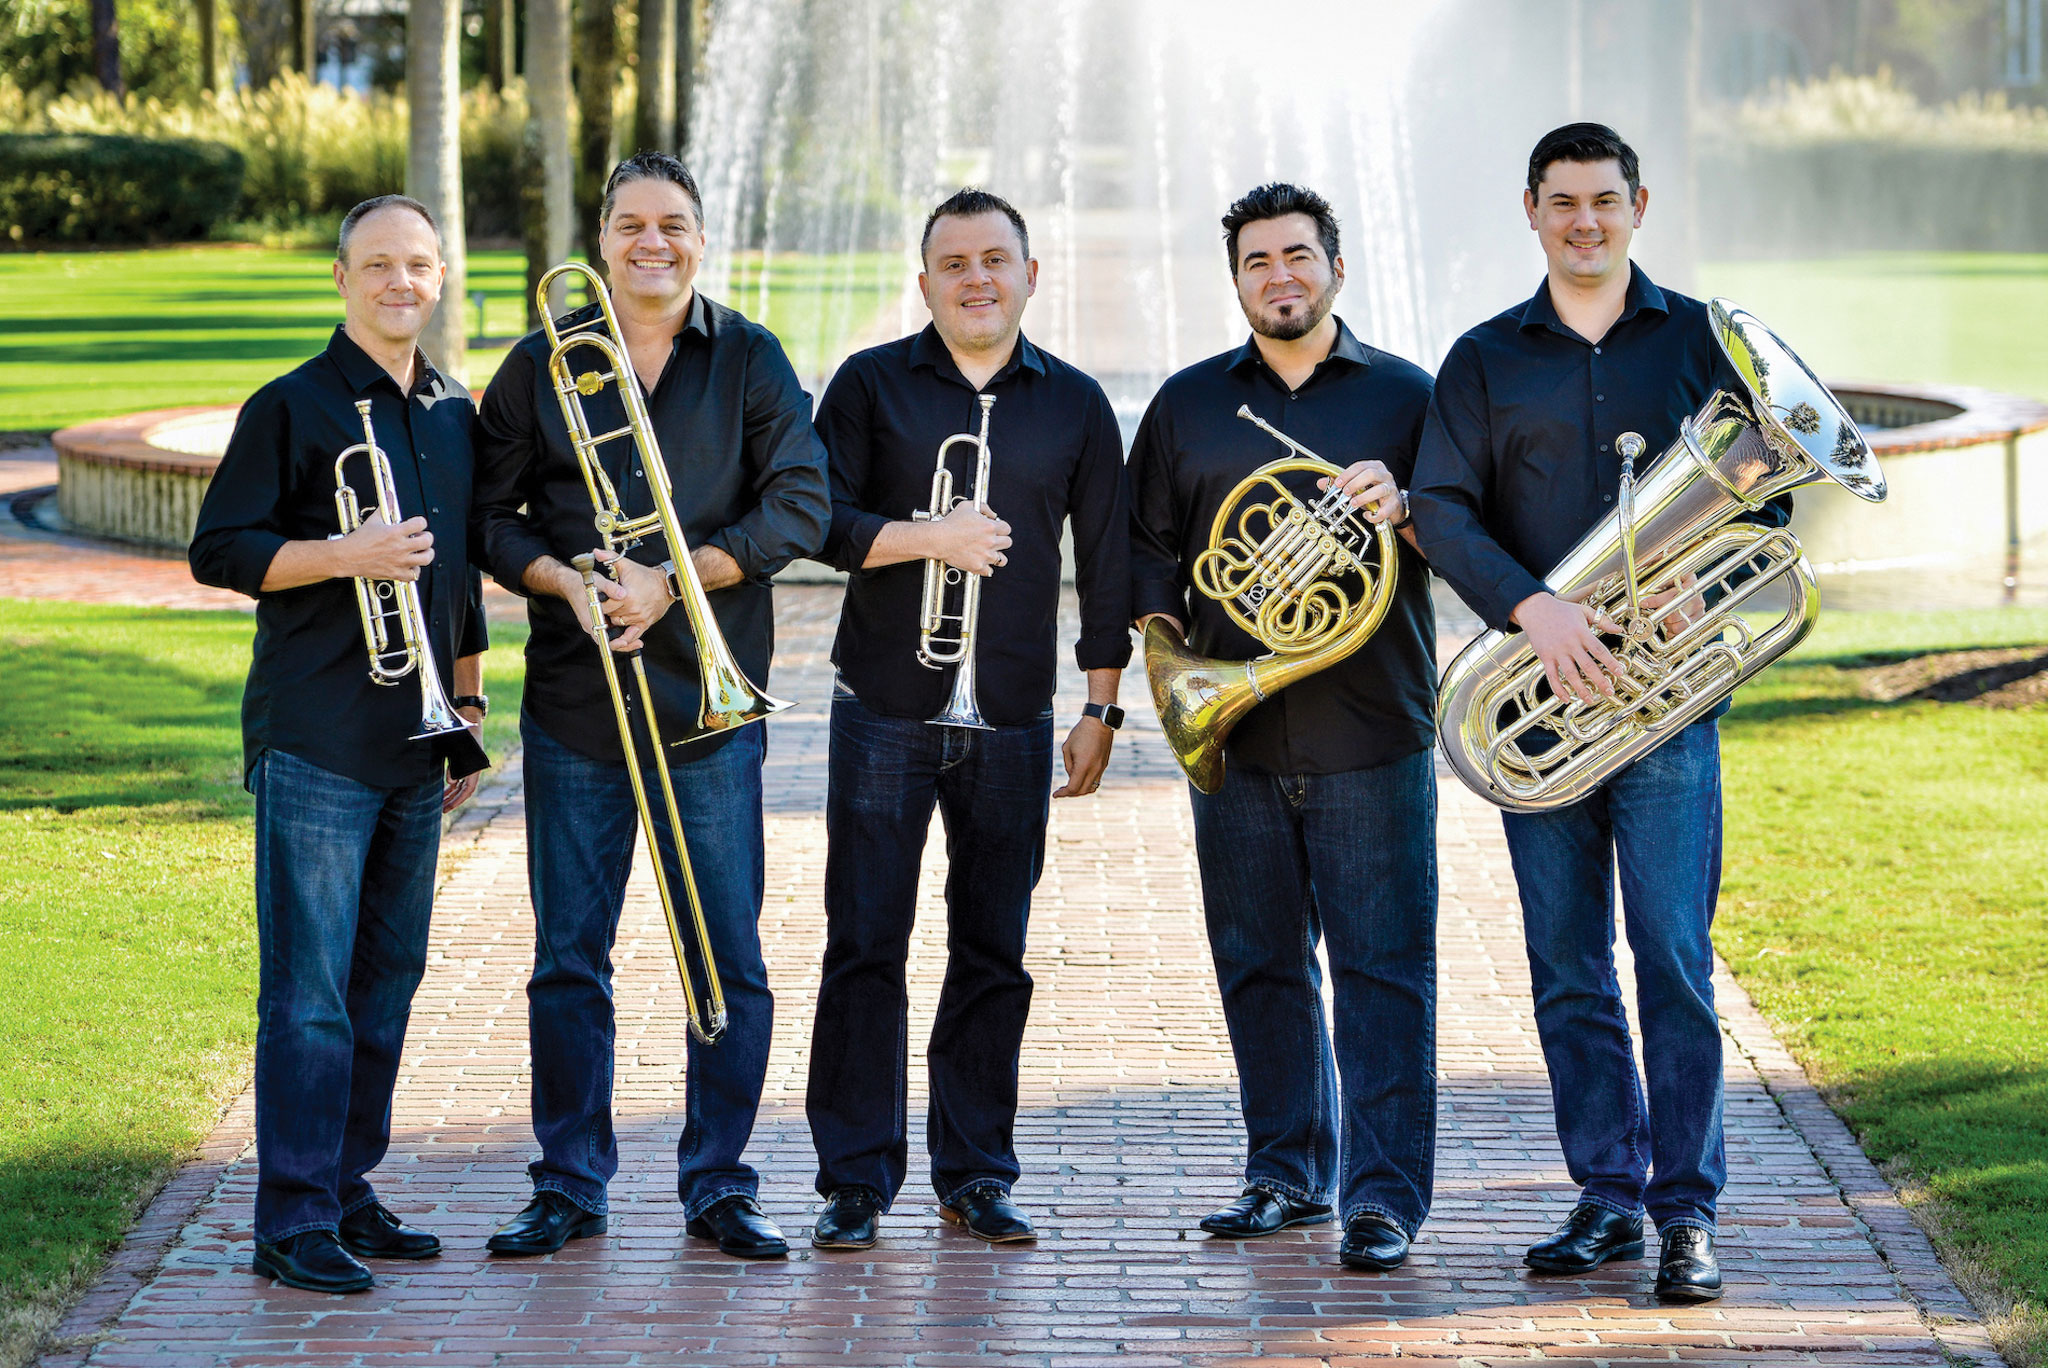 Members of Boston Brass pose for a photo.